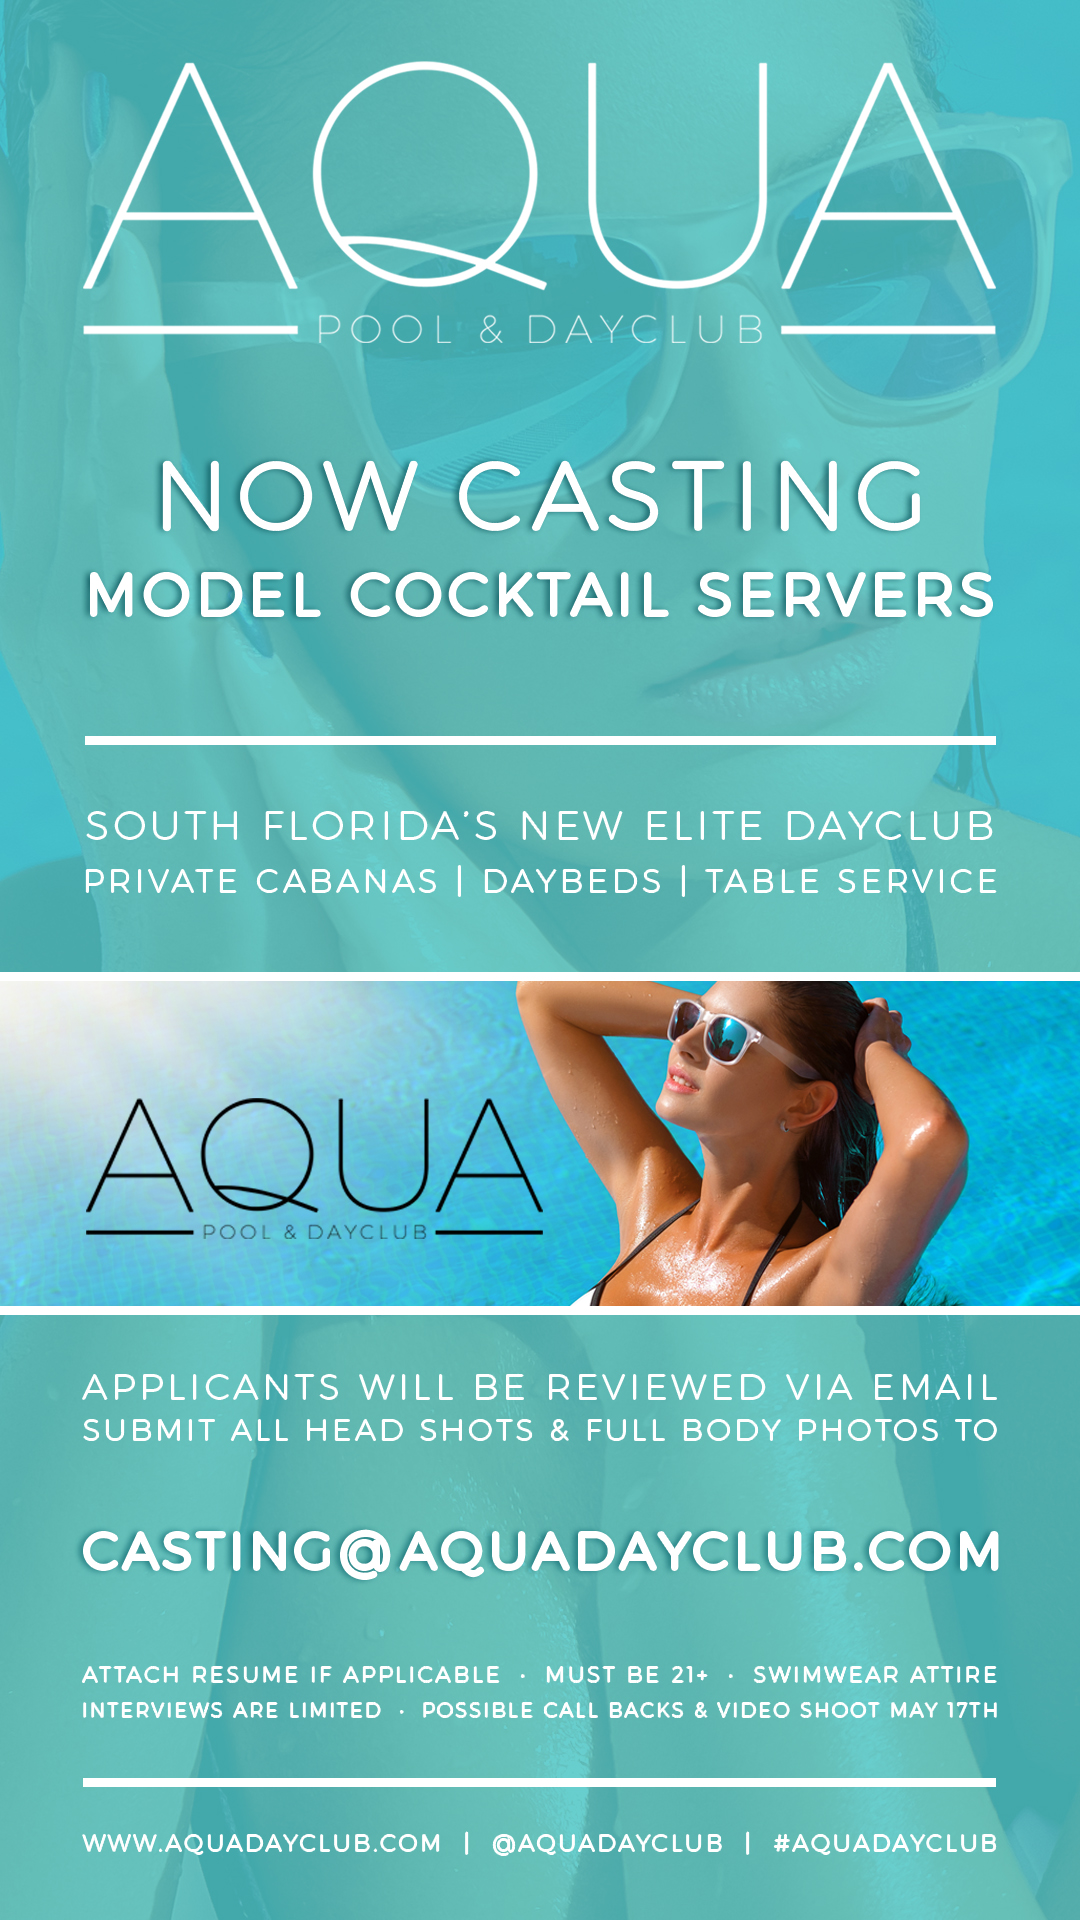 Casting Model Cocktail Servers